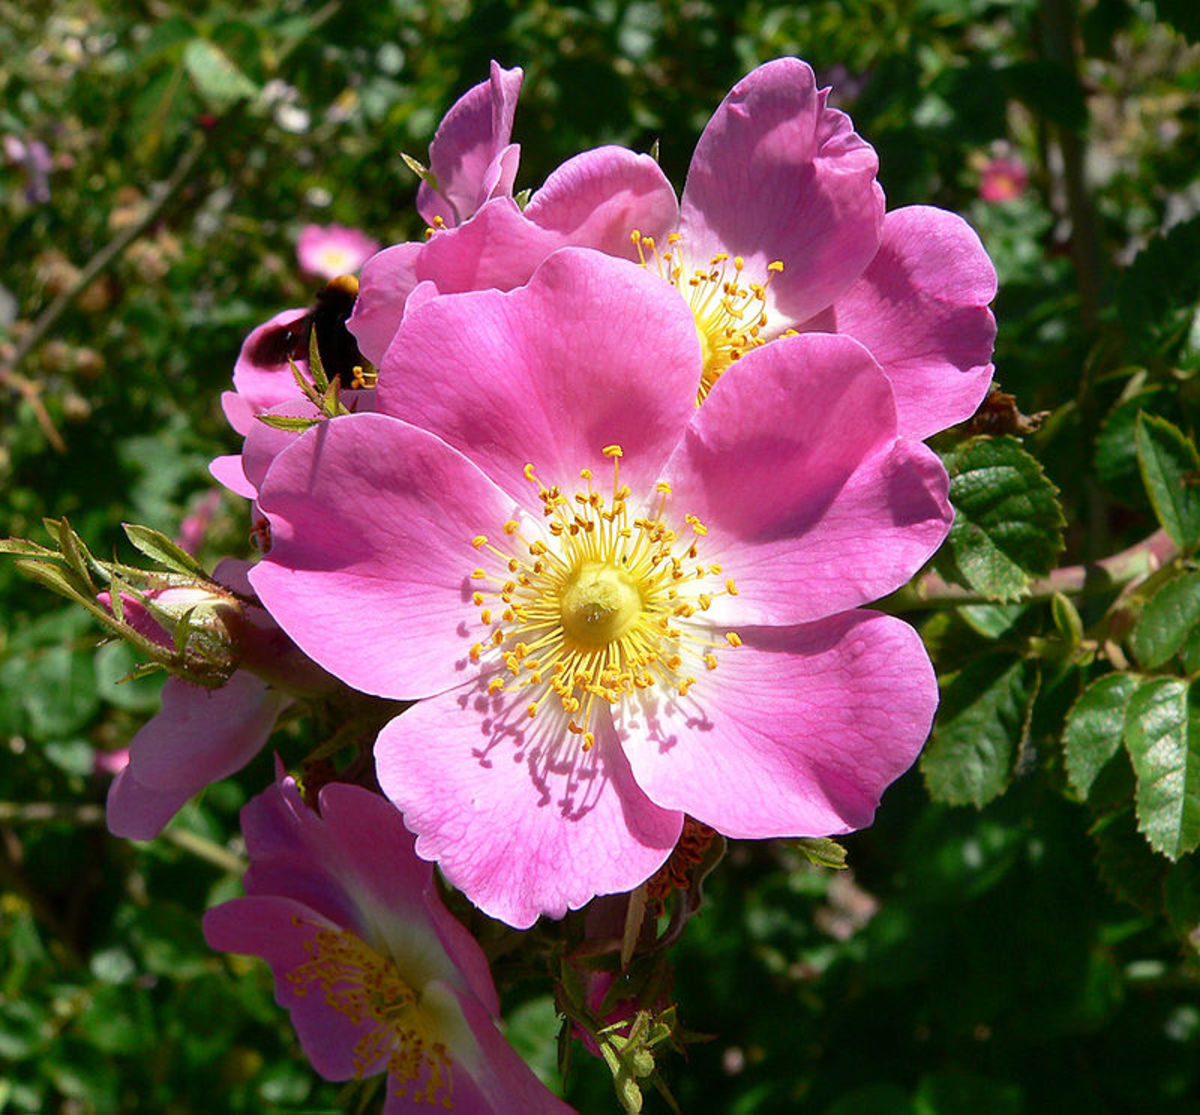 How to Grow an Eglantine (Sweet Briar) Rose, an Heirloom Rose